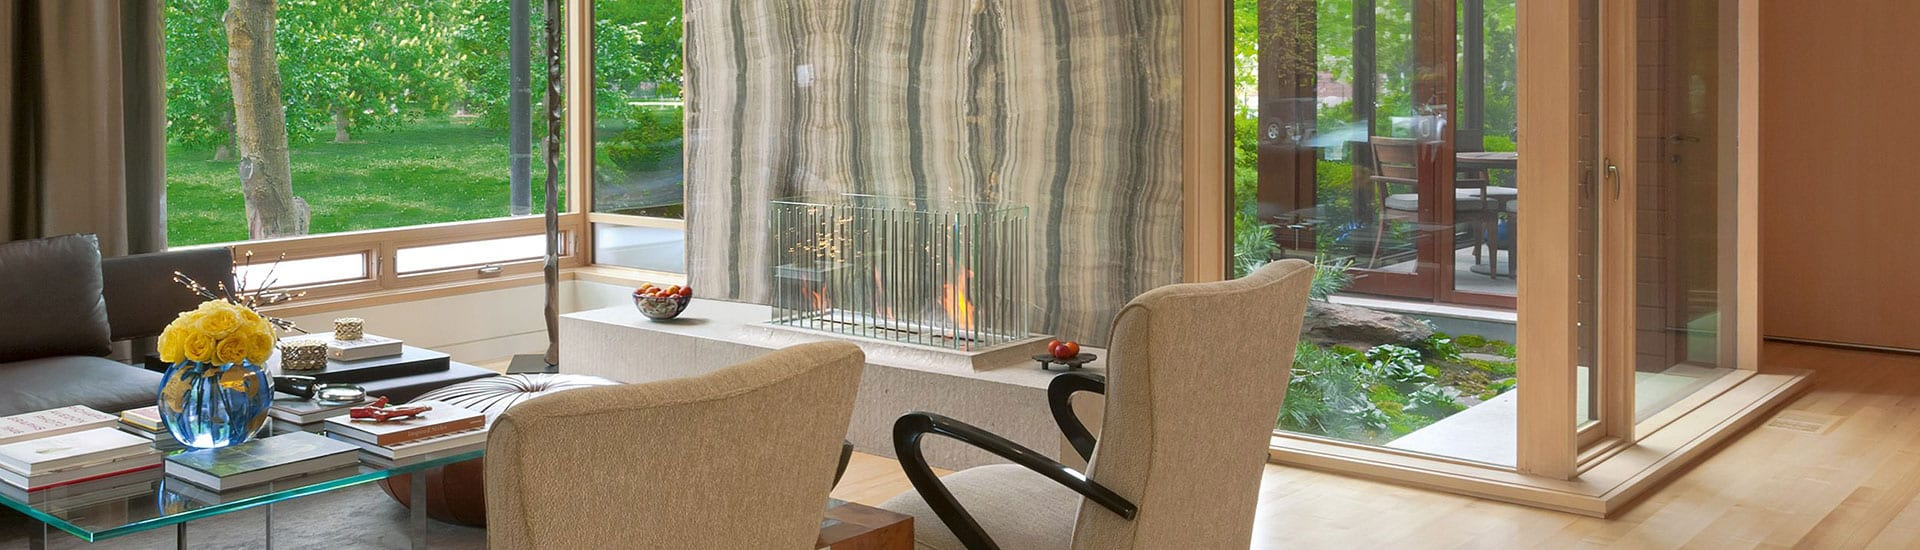 Architectural window design inspiration of view through large living room windows